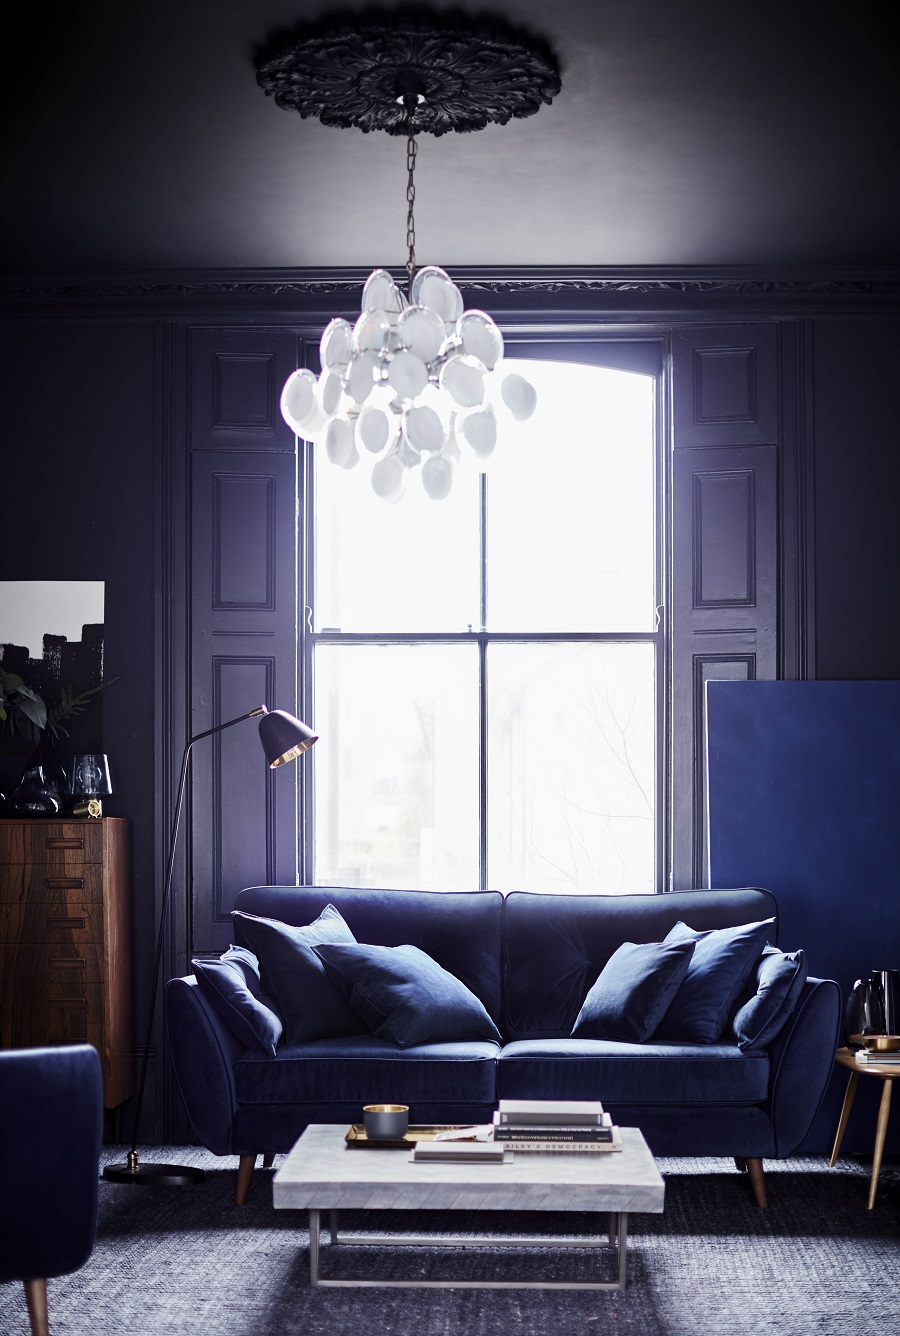 Pantones-Ultra-Violet-Colour-of-the-Year-2018-and-How-to-Use-It-6.jpg